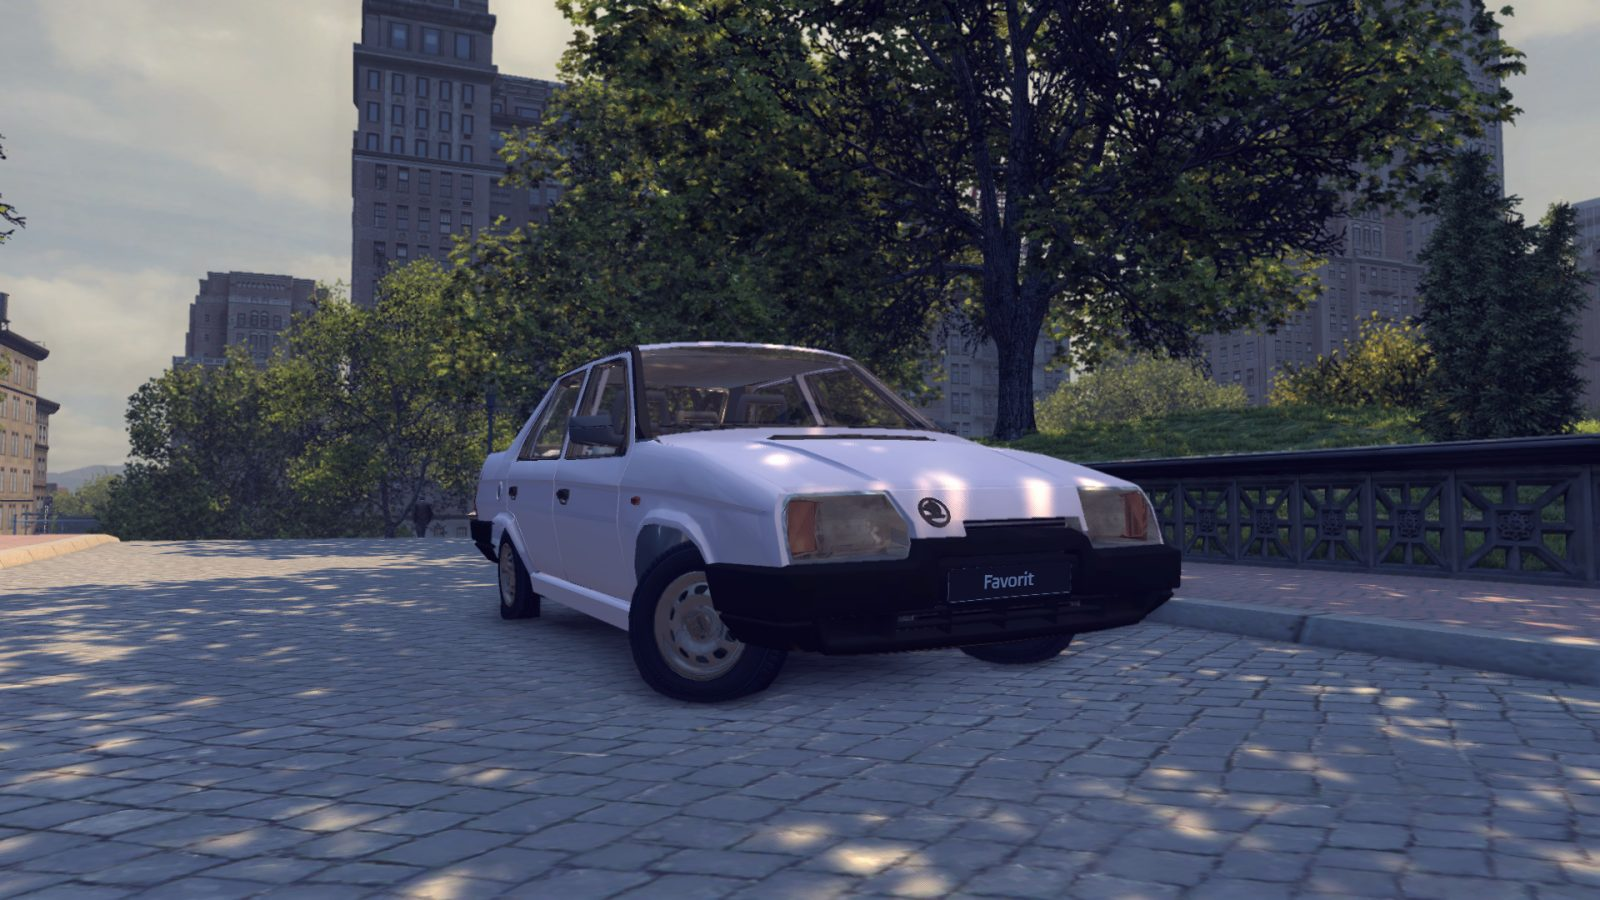 Mafia 2 – Skoda Favorit Typ 782 Sedan